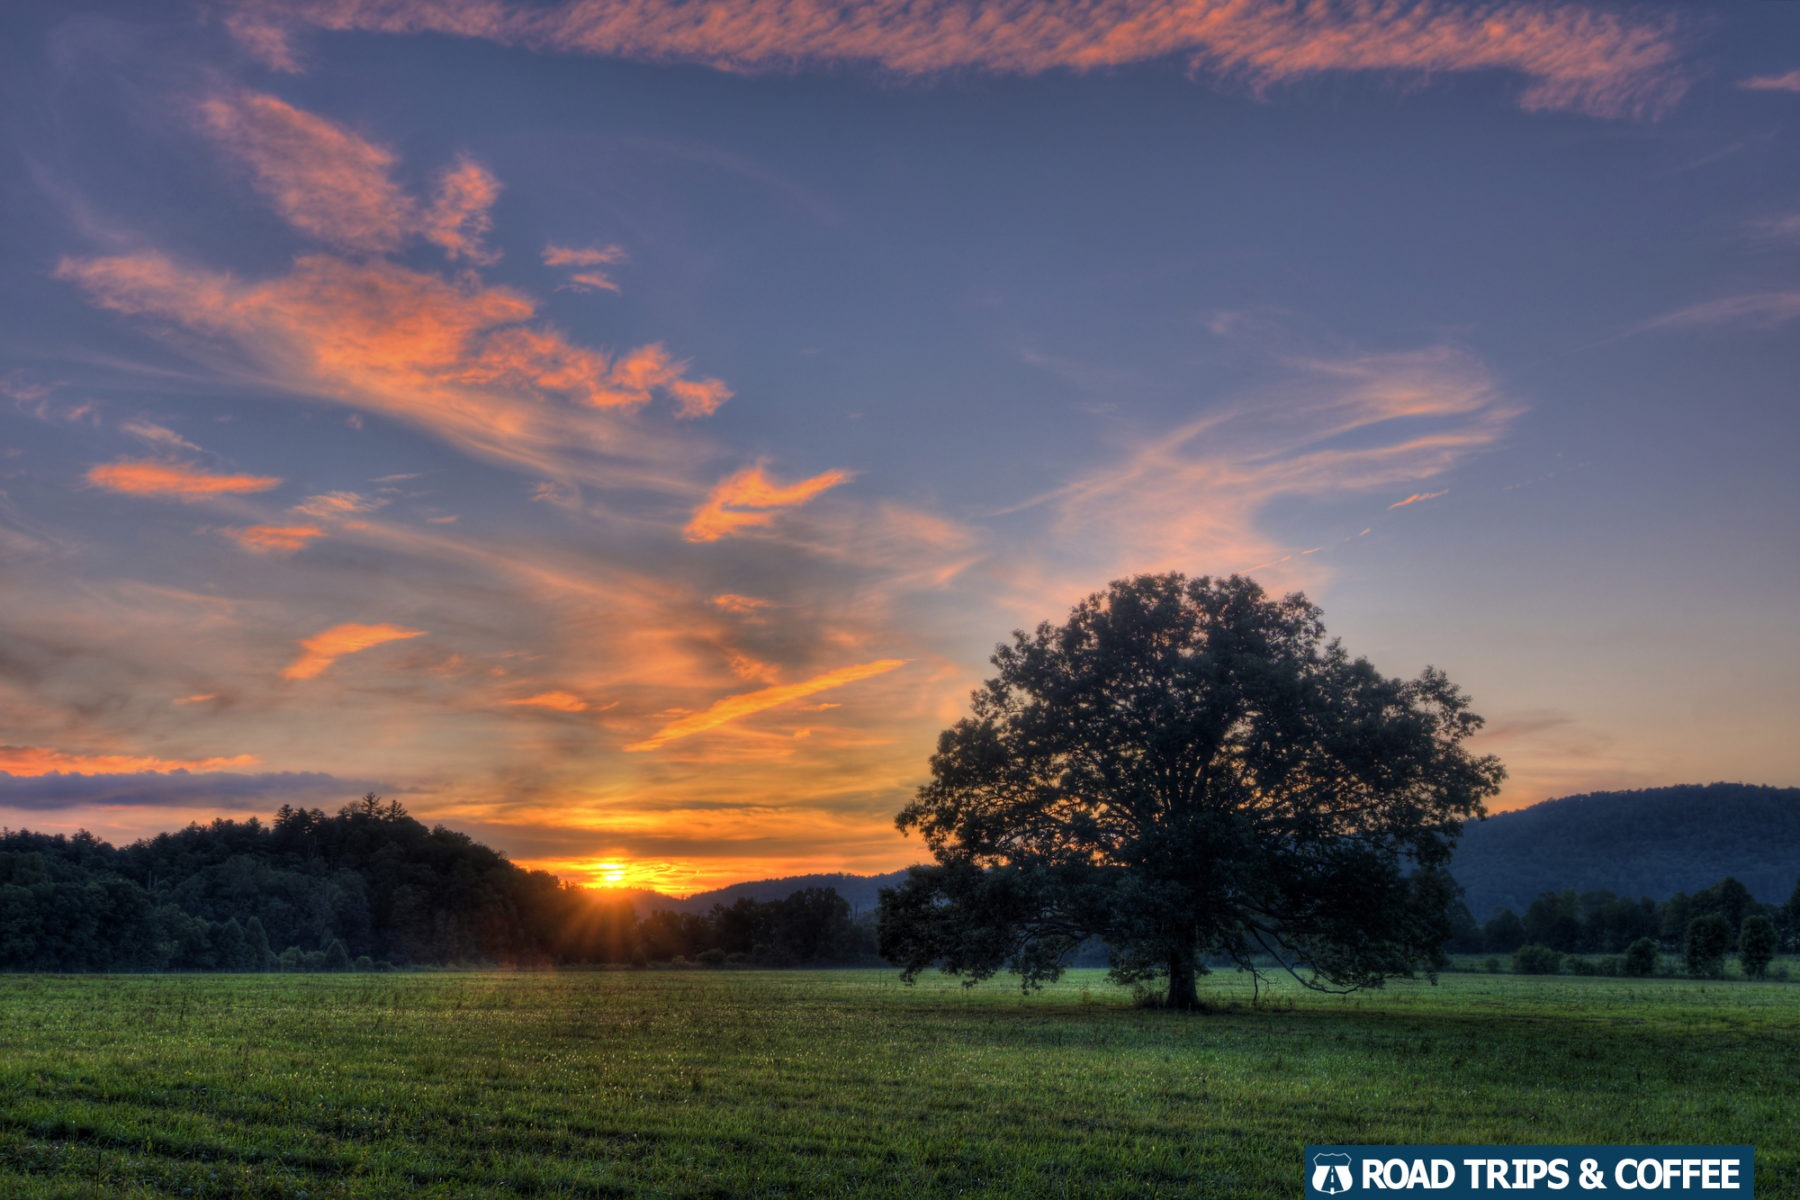 A warm sunset across the sky with a long tree in a large grassy field at Cades Cove in the Great Smoky Mountains National Park in Tennessee